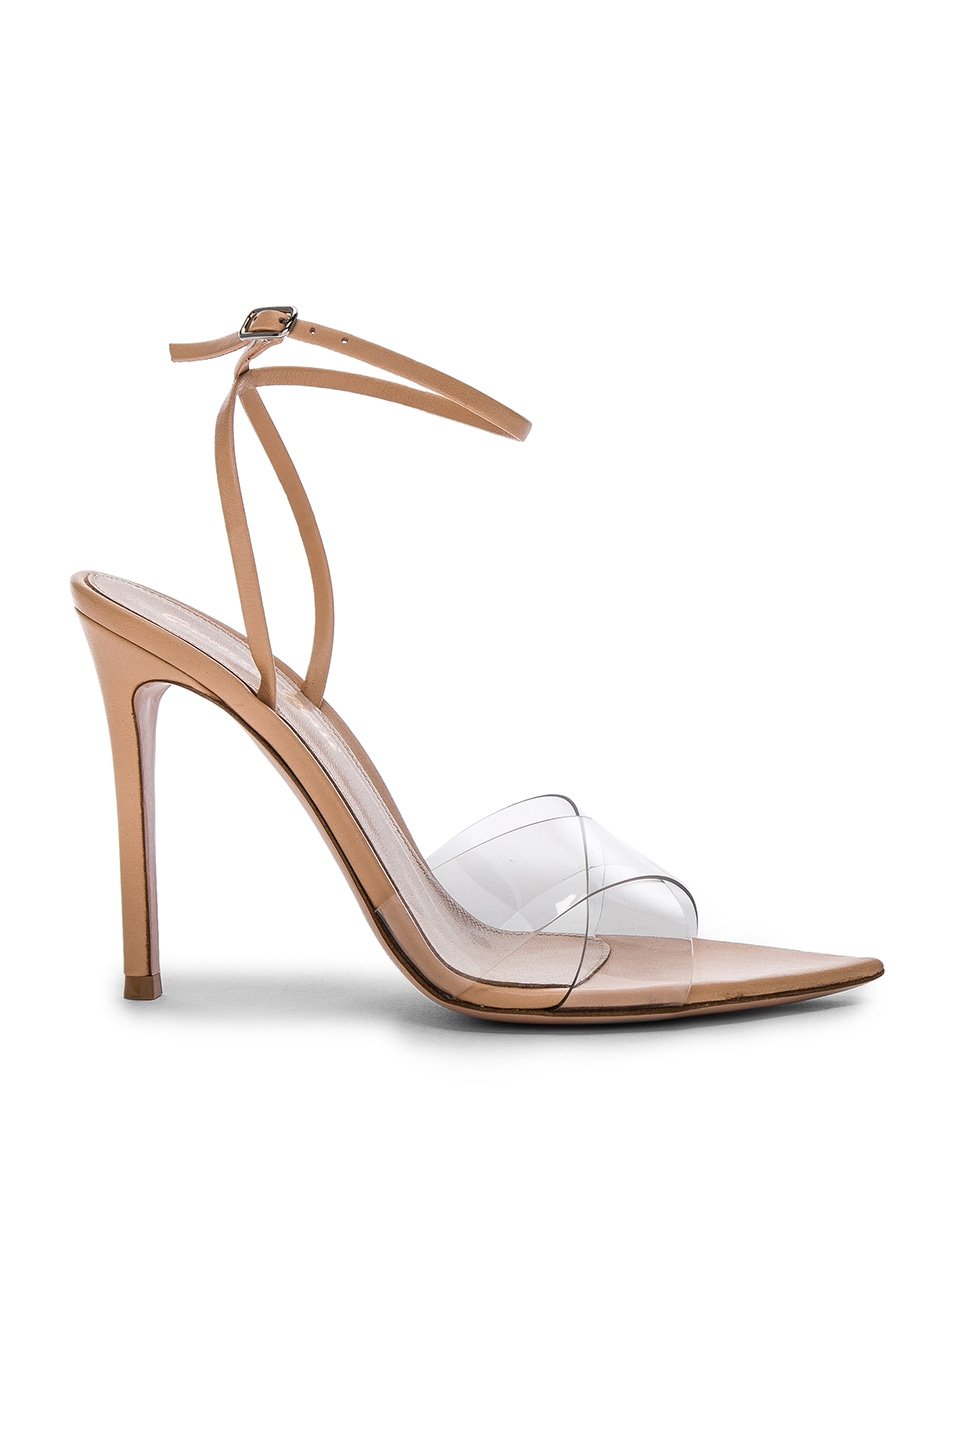 Image 1 of Gianvito Rossi Leather & Plexi Stark Ankle Strap Sandals in Transparent & Nude